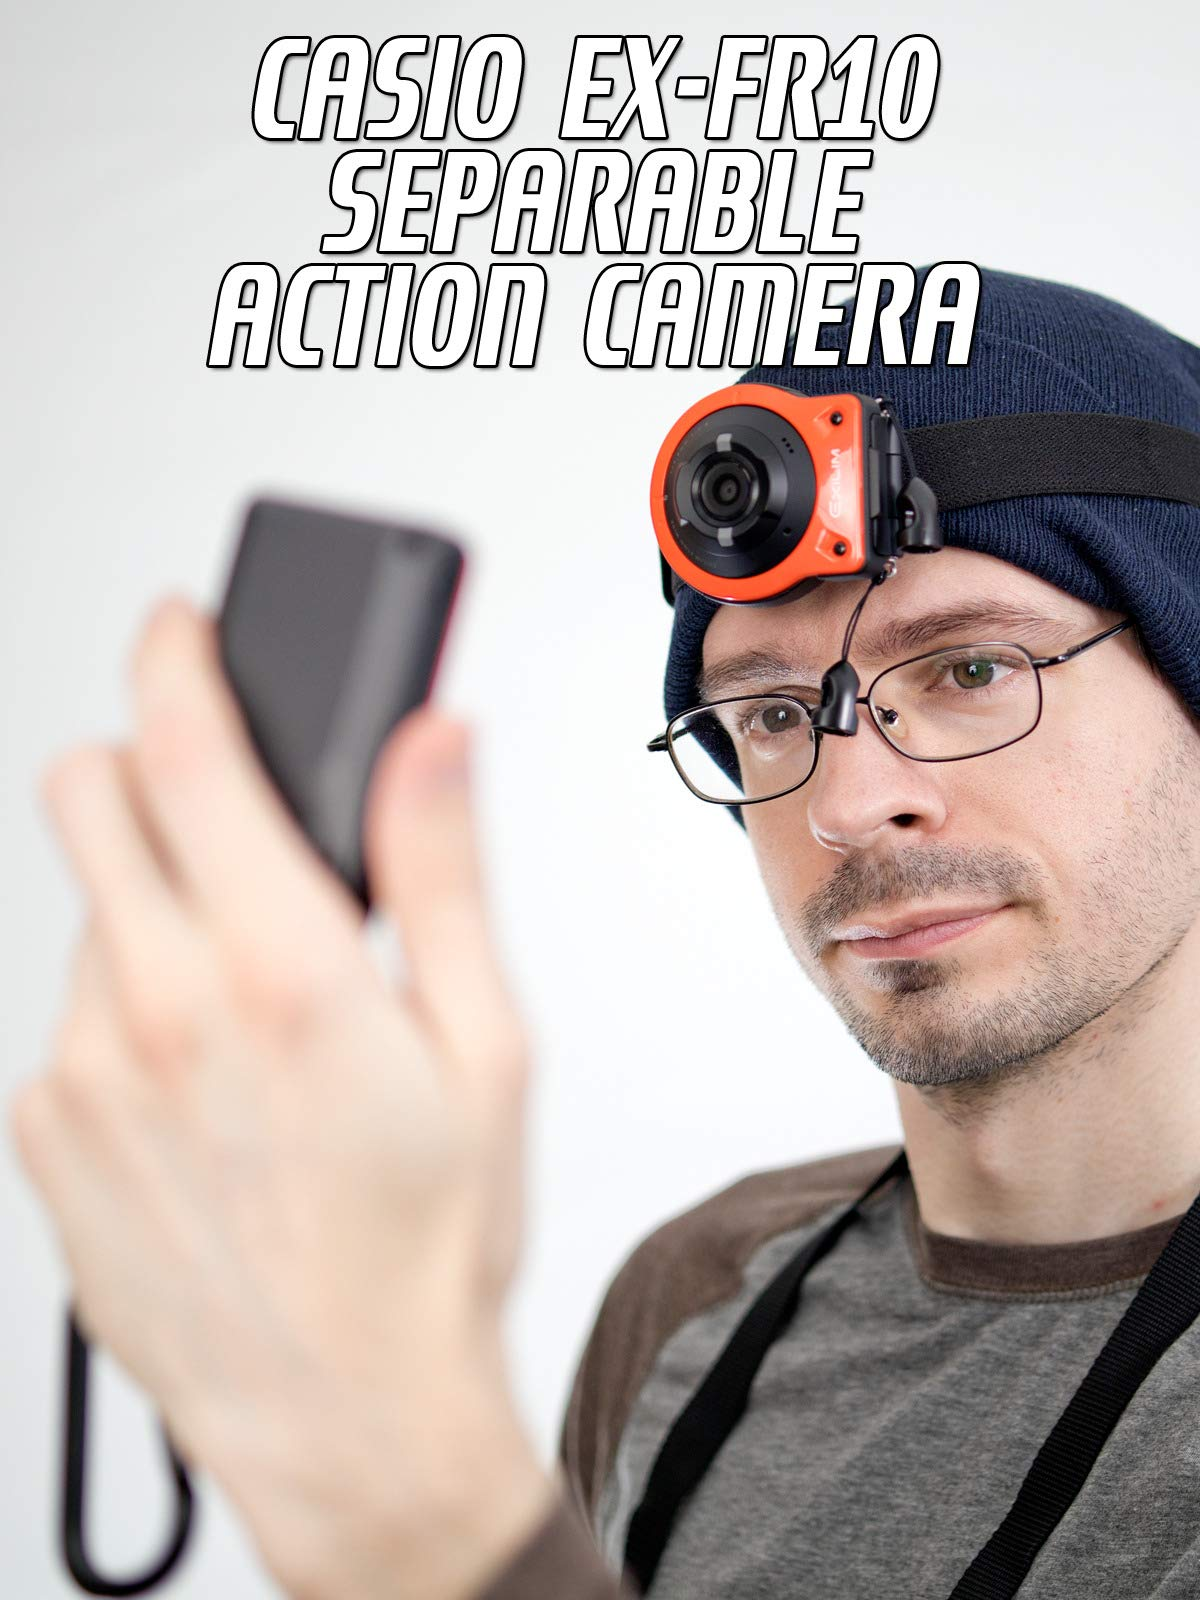 Review: Casio EX-FR10 Separable Action Camera